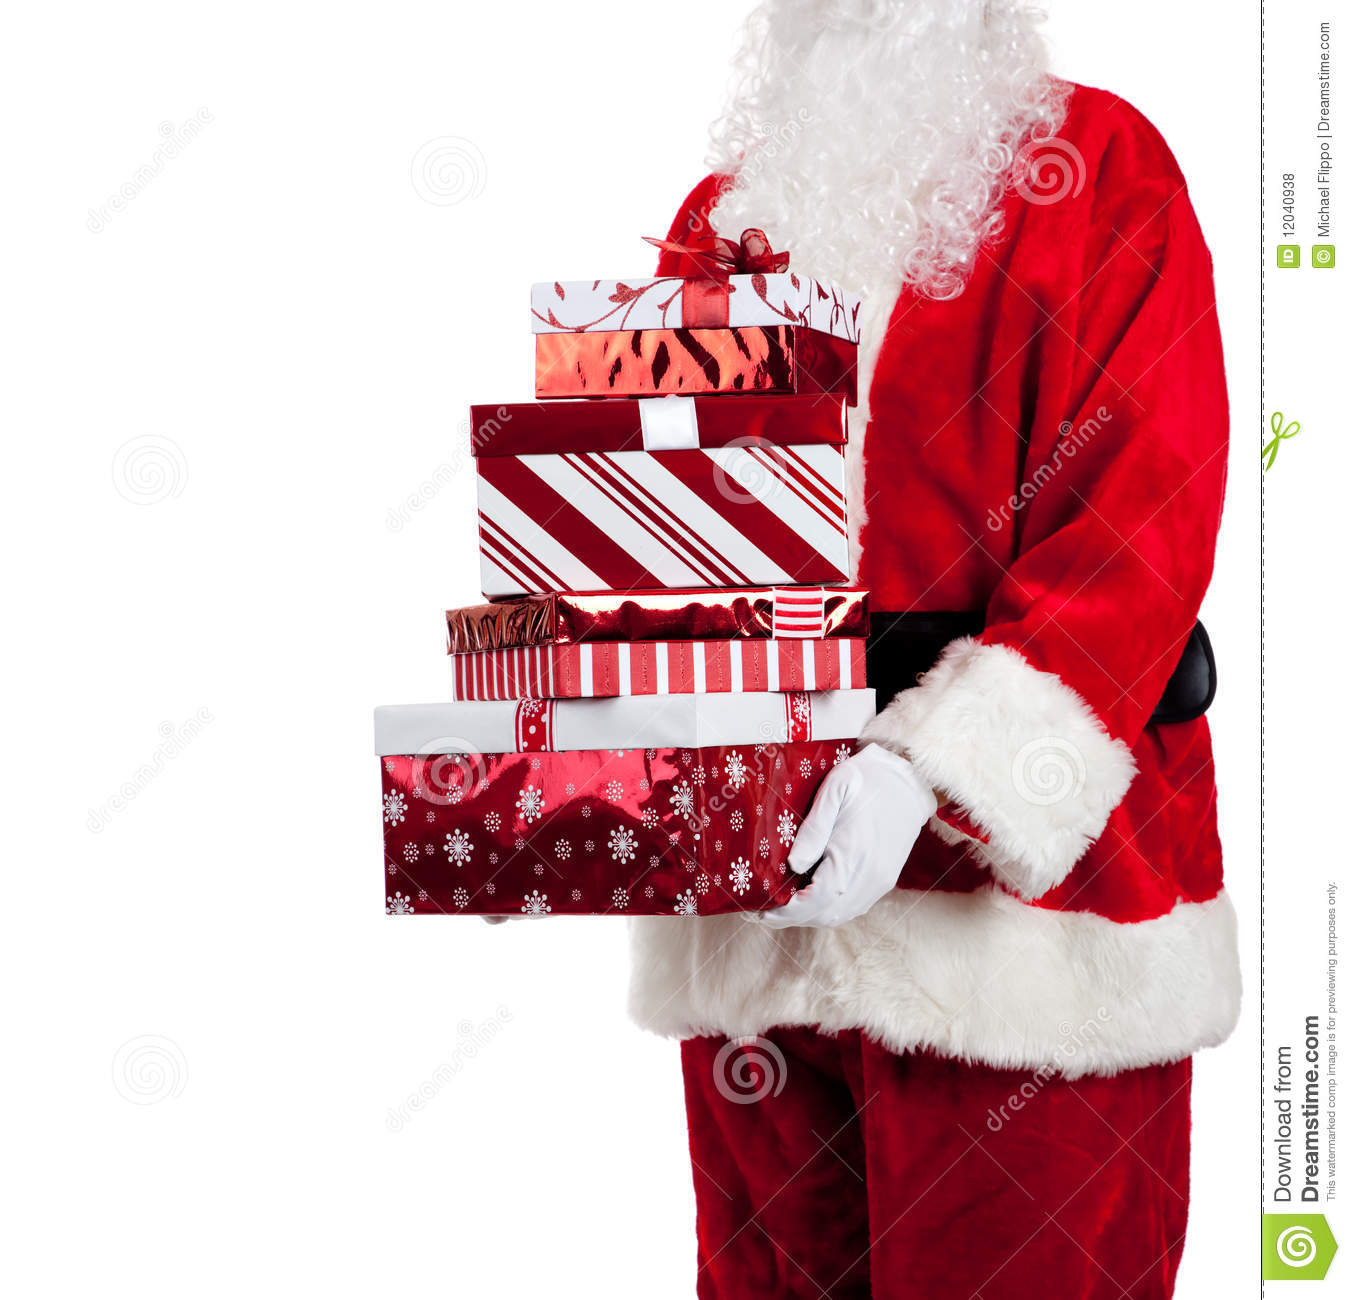 Santa Claus Giving Christmas Presents Royalty Free Stock ...